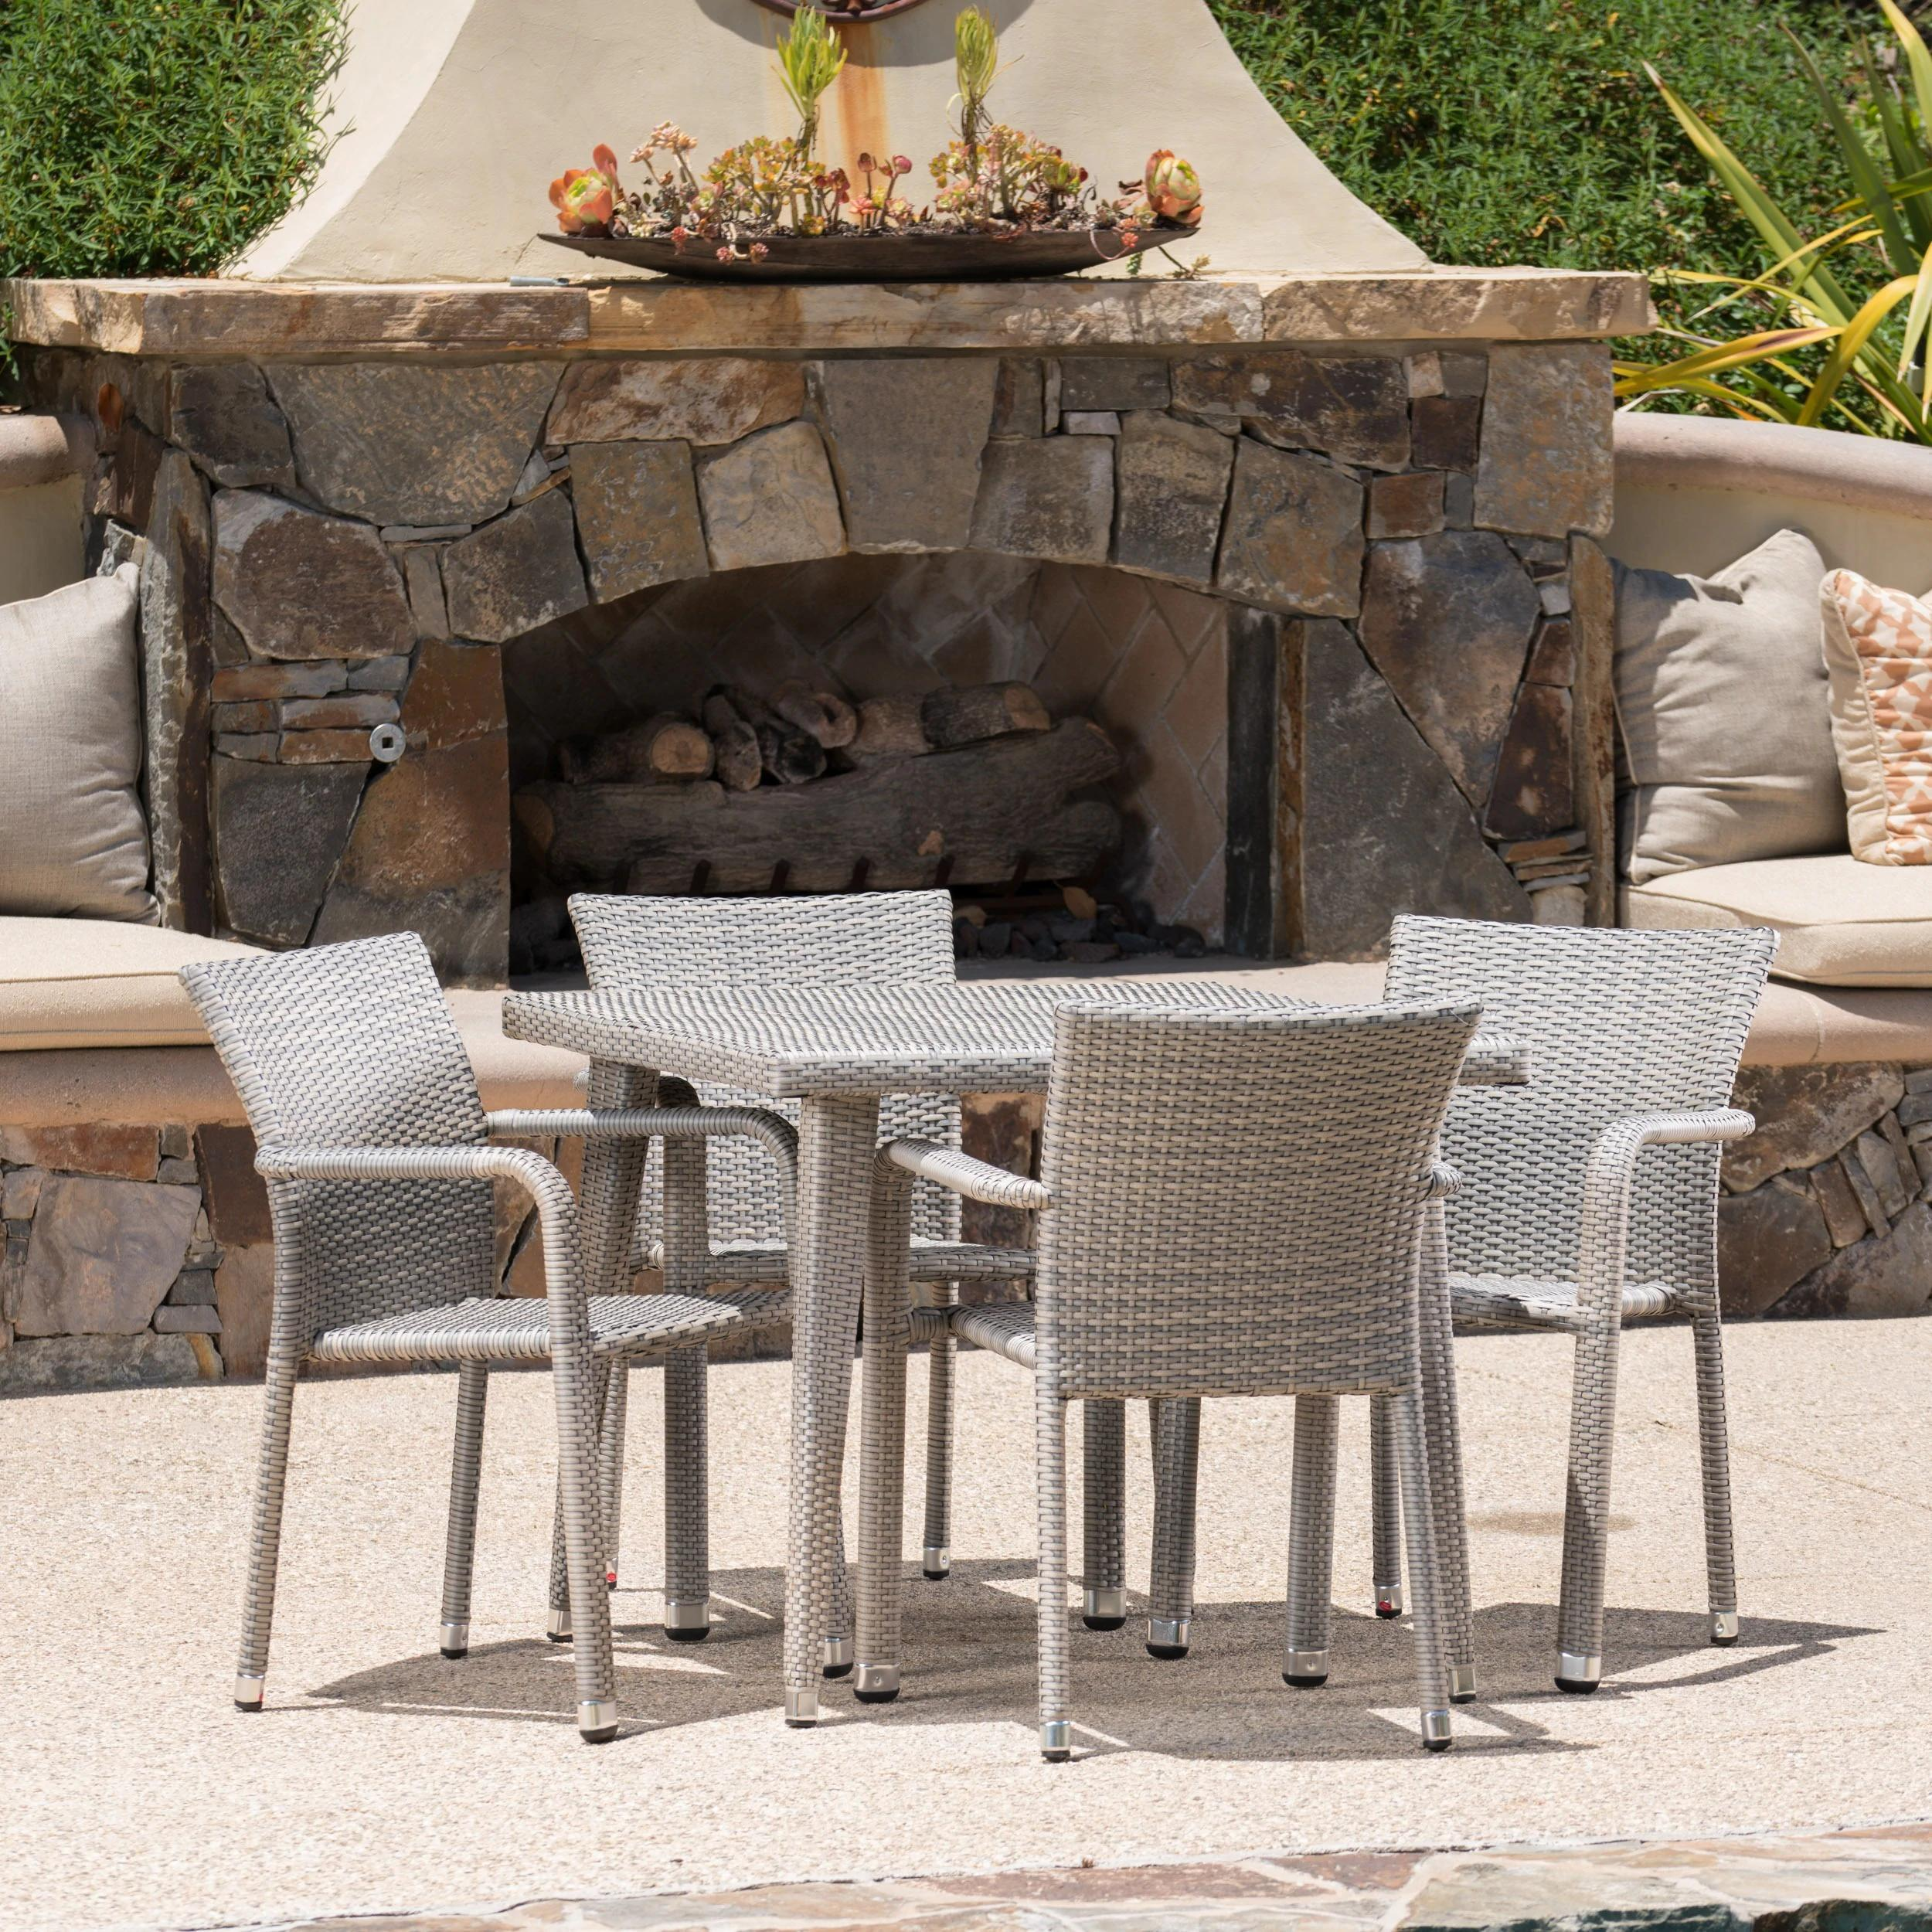 Rutledge Outdoor 5-piece Square Aluminum Wicker Dining Set by Christopher Knight Home - Grey